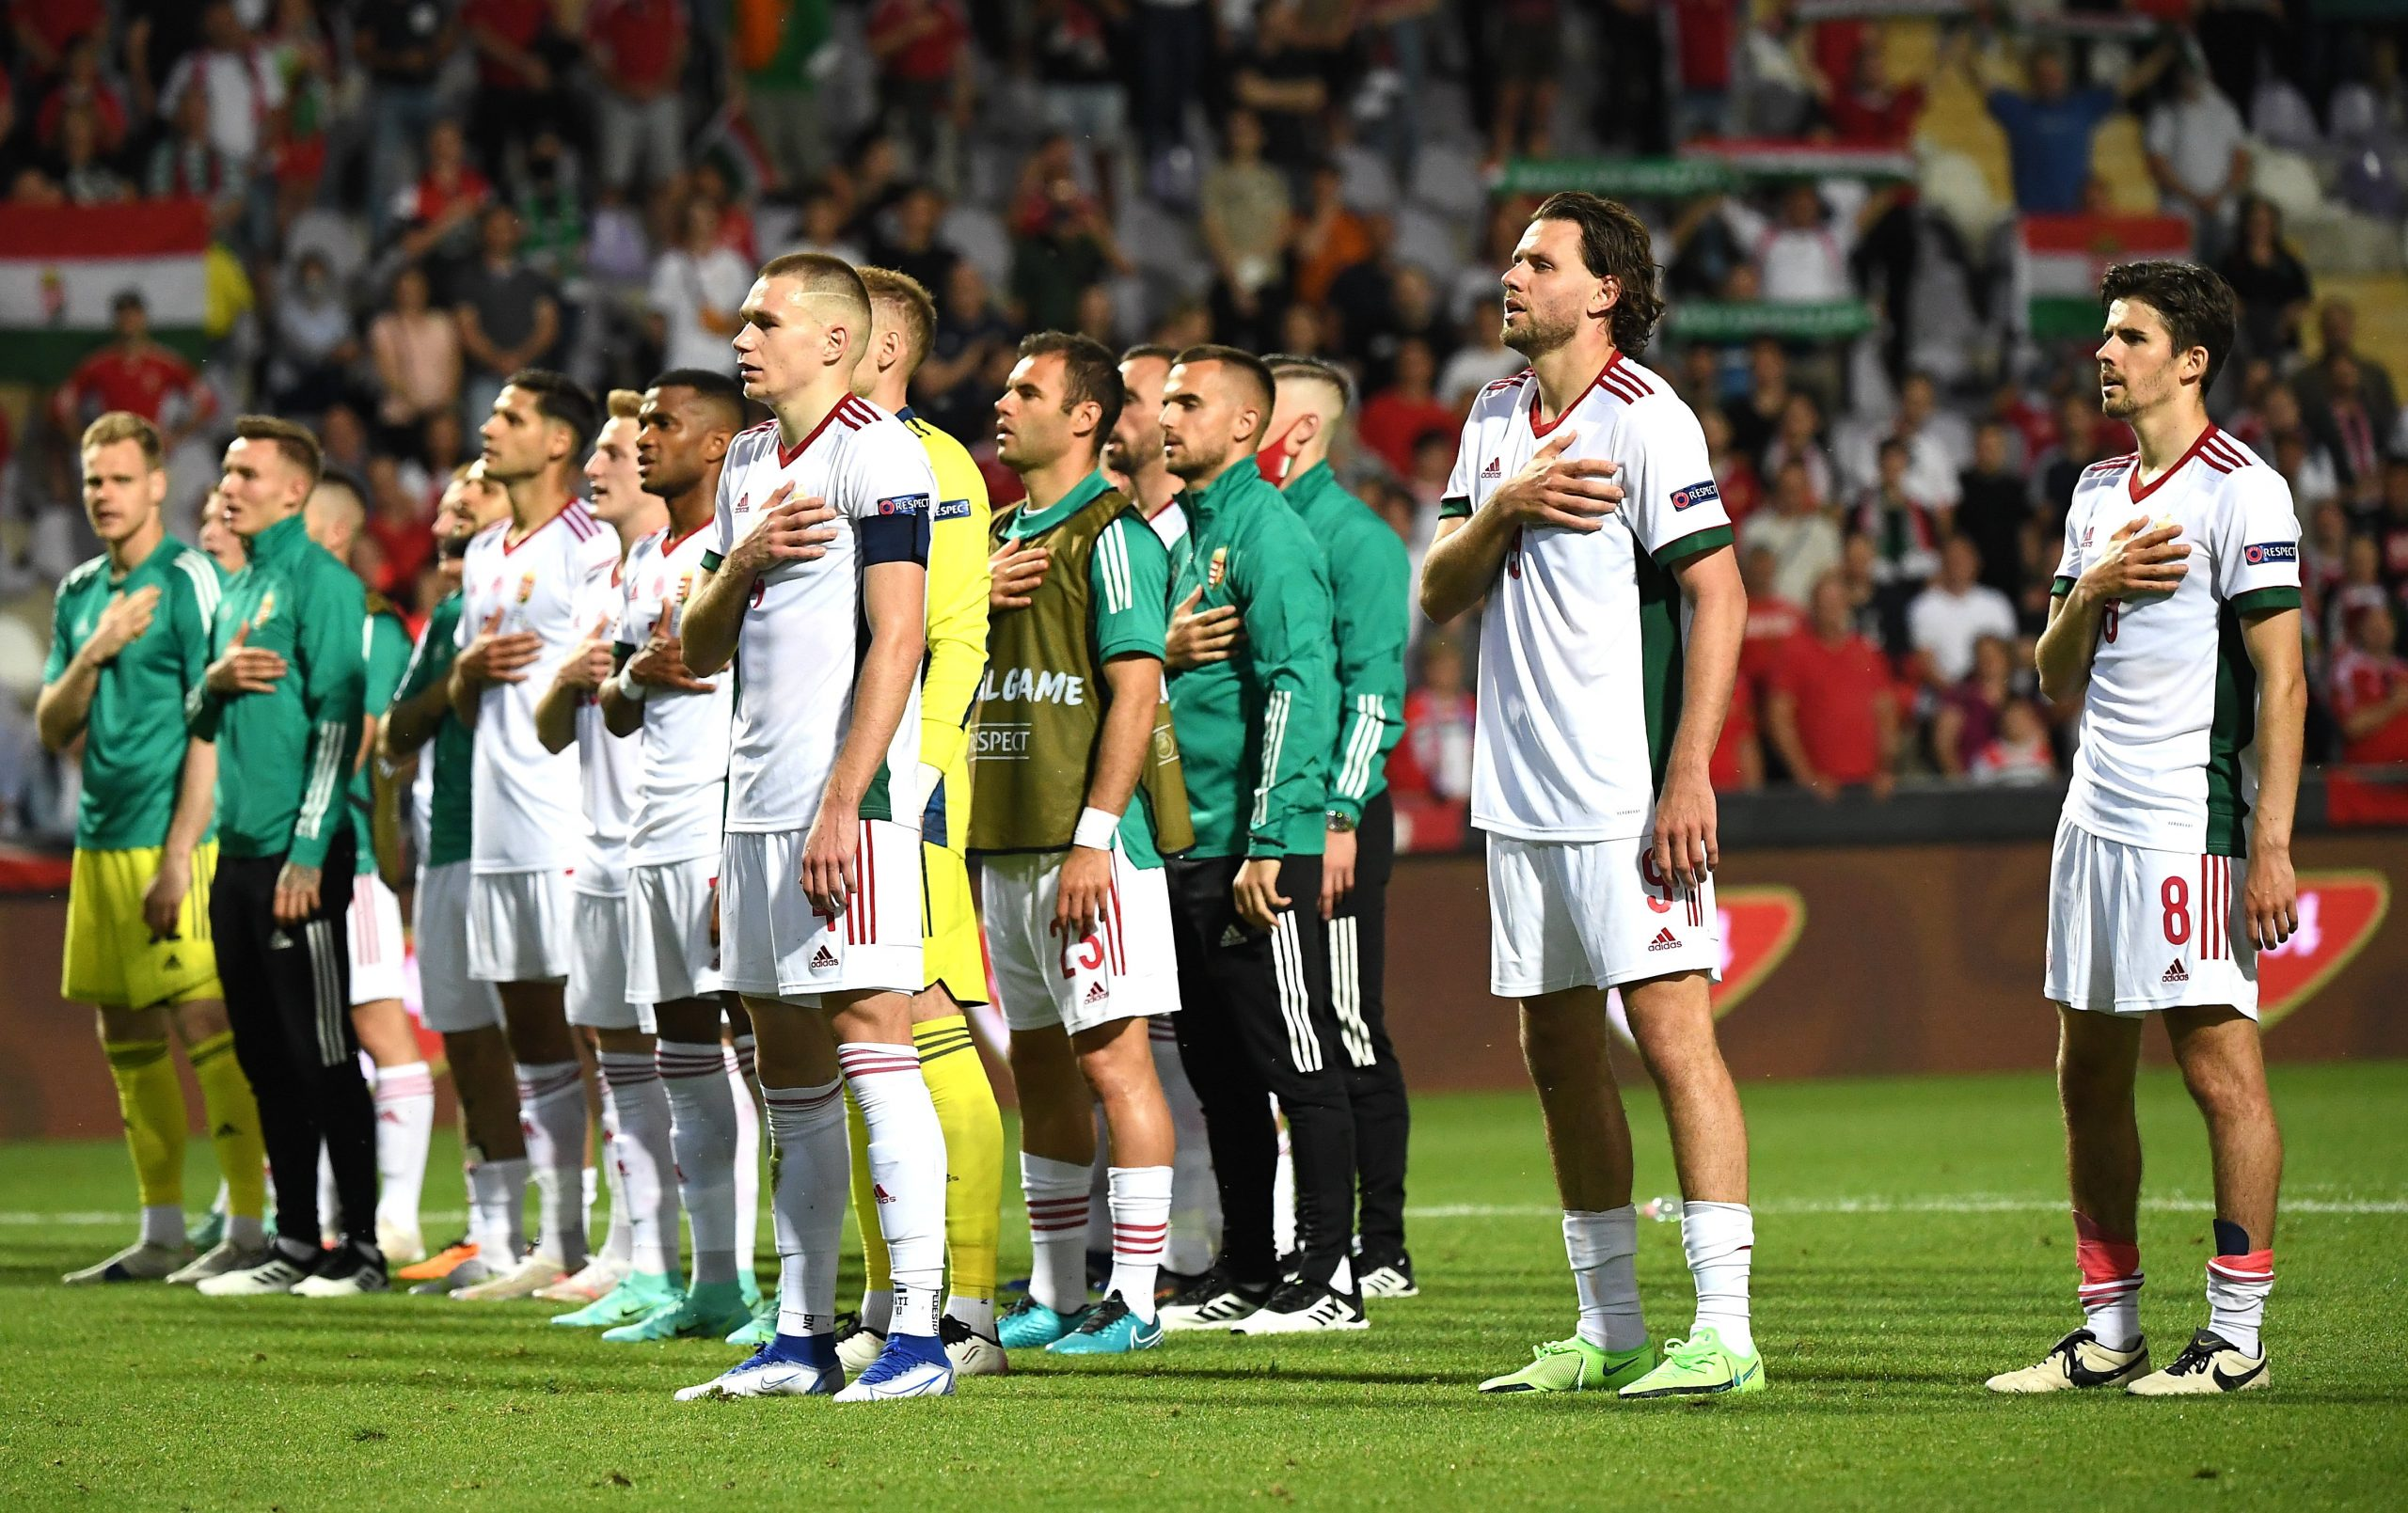 Despite the Odds, Hope and Support Surround Hungarian National Team